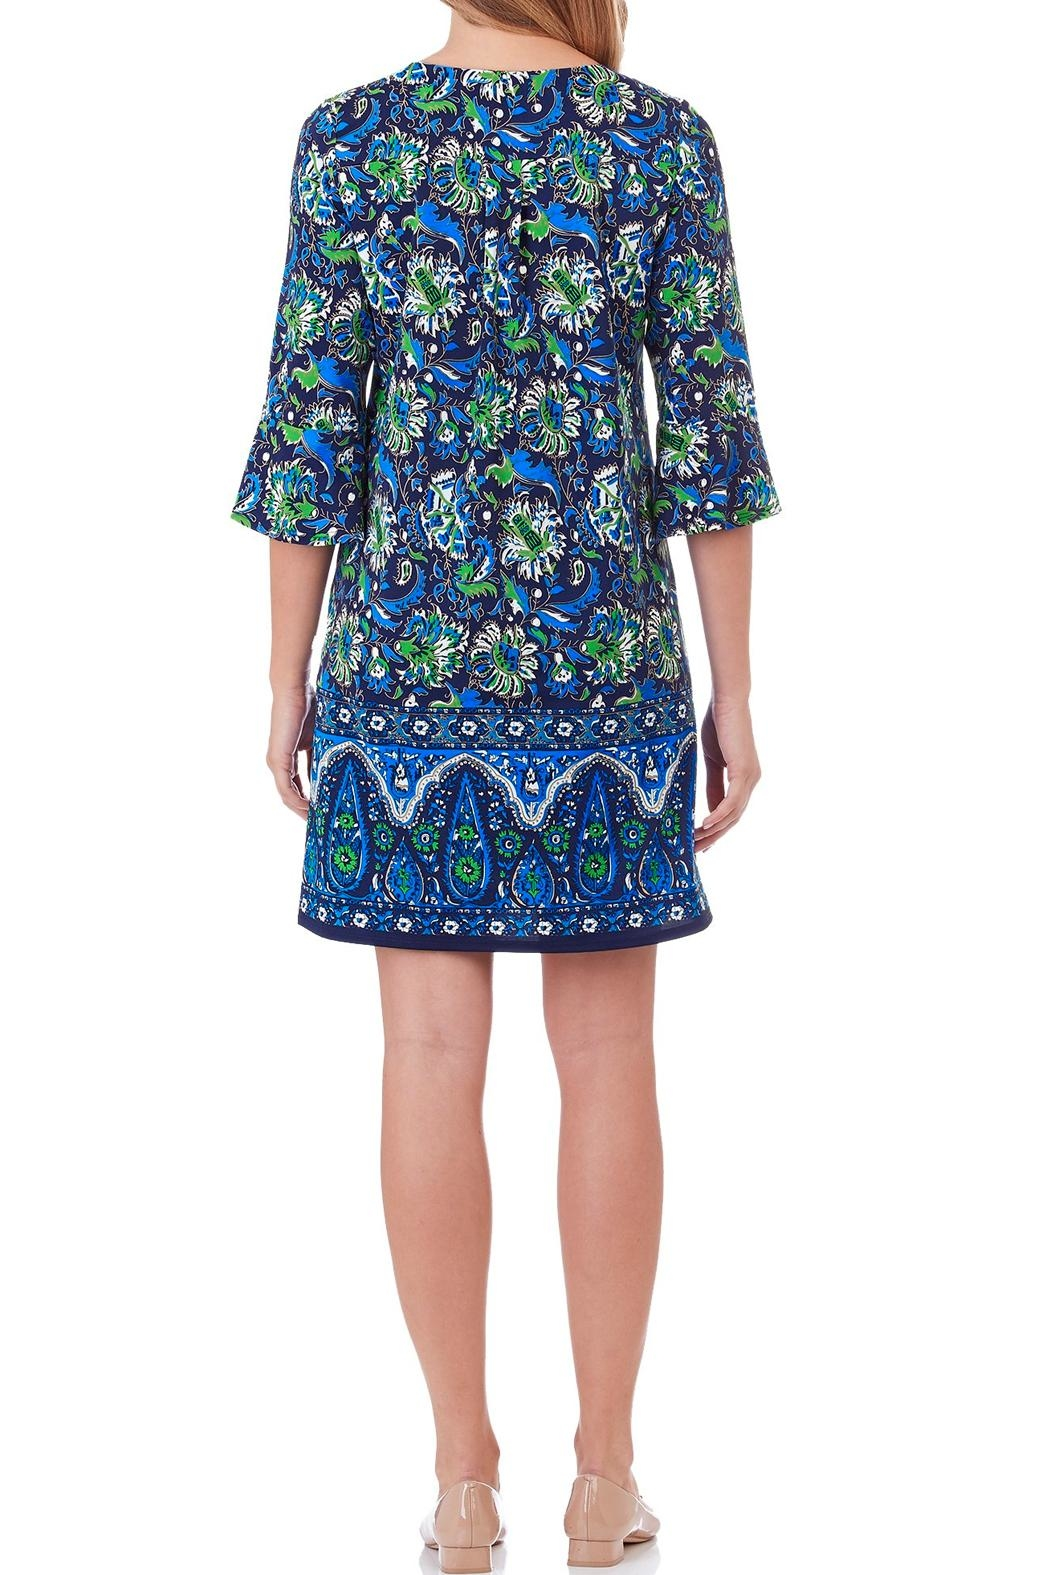 Jude Connally Margot Shift Dress - Front Full Image